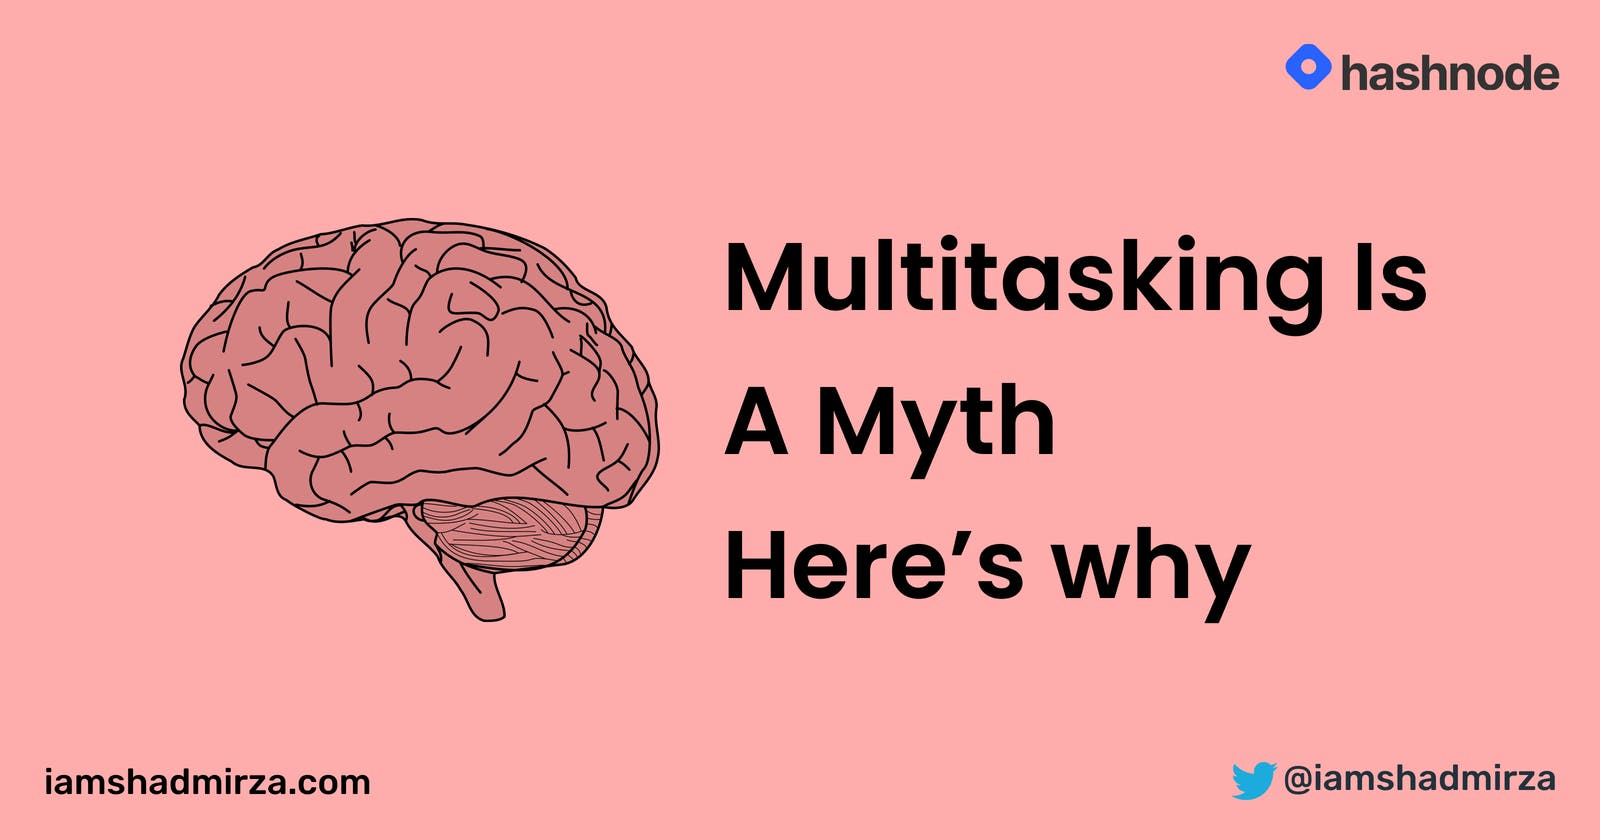 Multitasking Is A Myth. Here's why